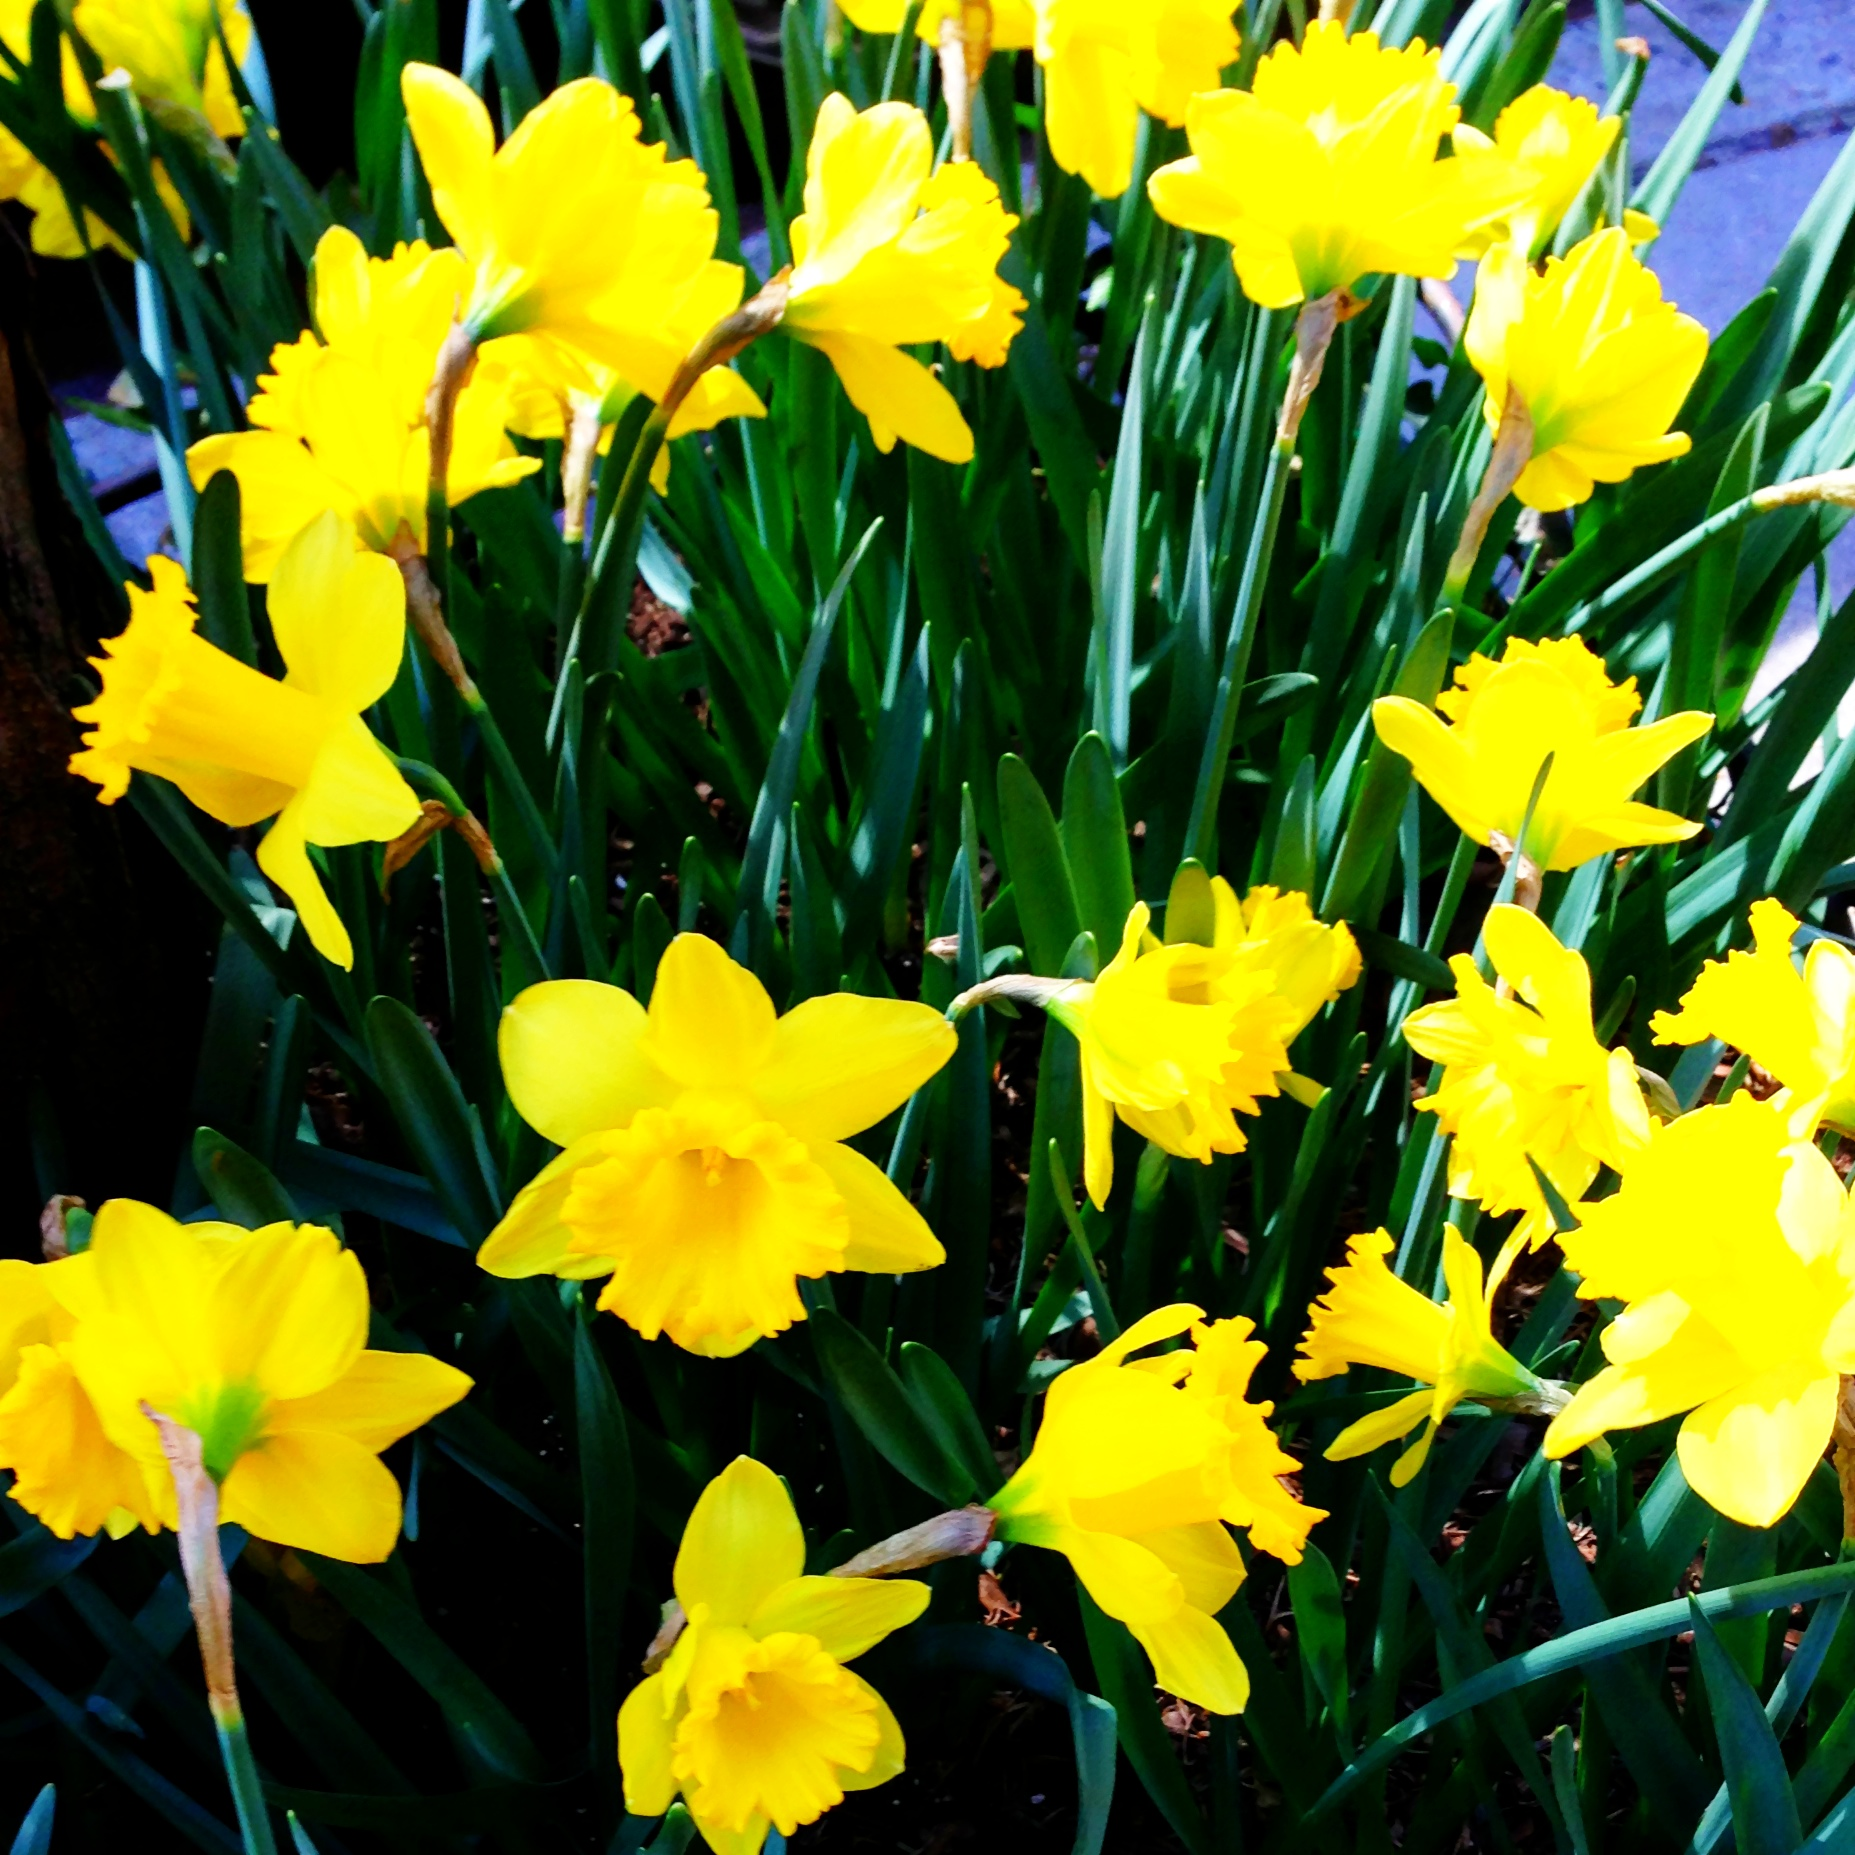 Yellow Daffodils, Daffodils, Yellow Flowers, Spring Flowers